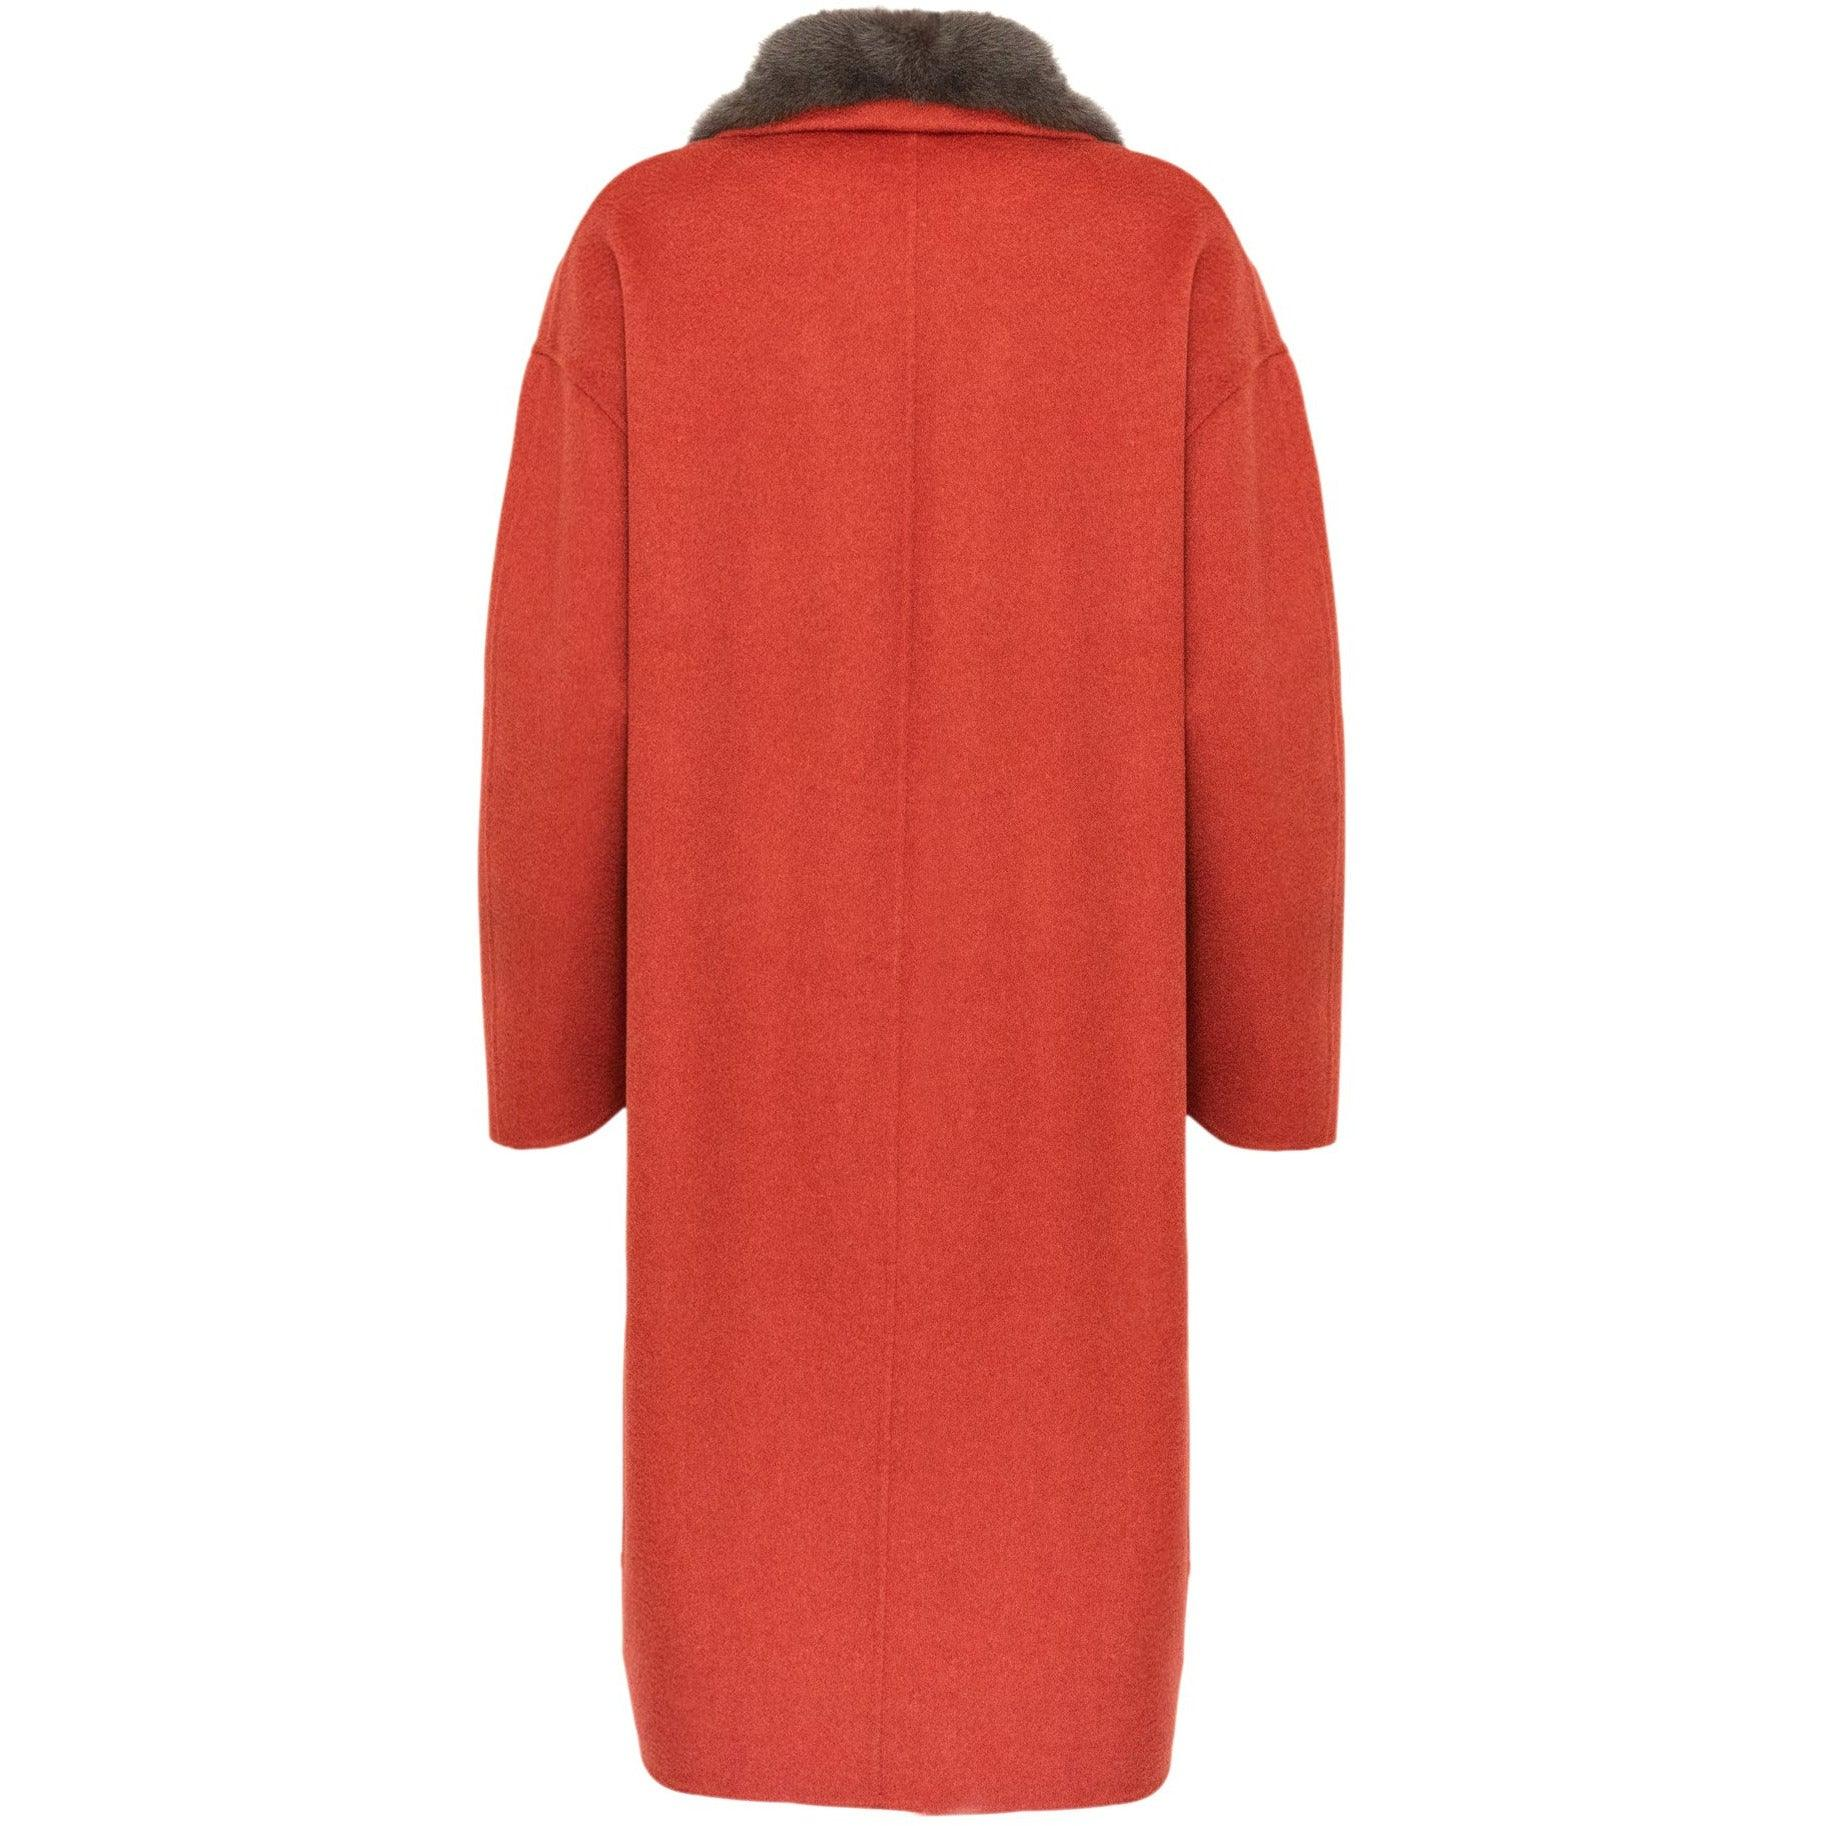 REVERSIBLE CASHMERE LONG COAT WITH MINK COLLAR - ROS1862 New 2020 Collection